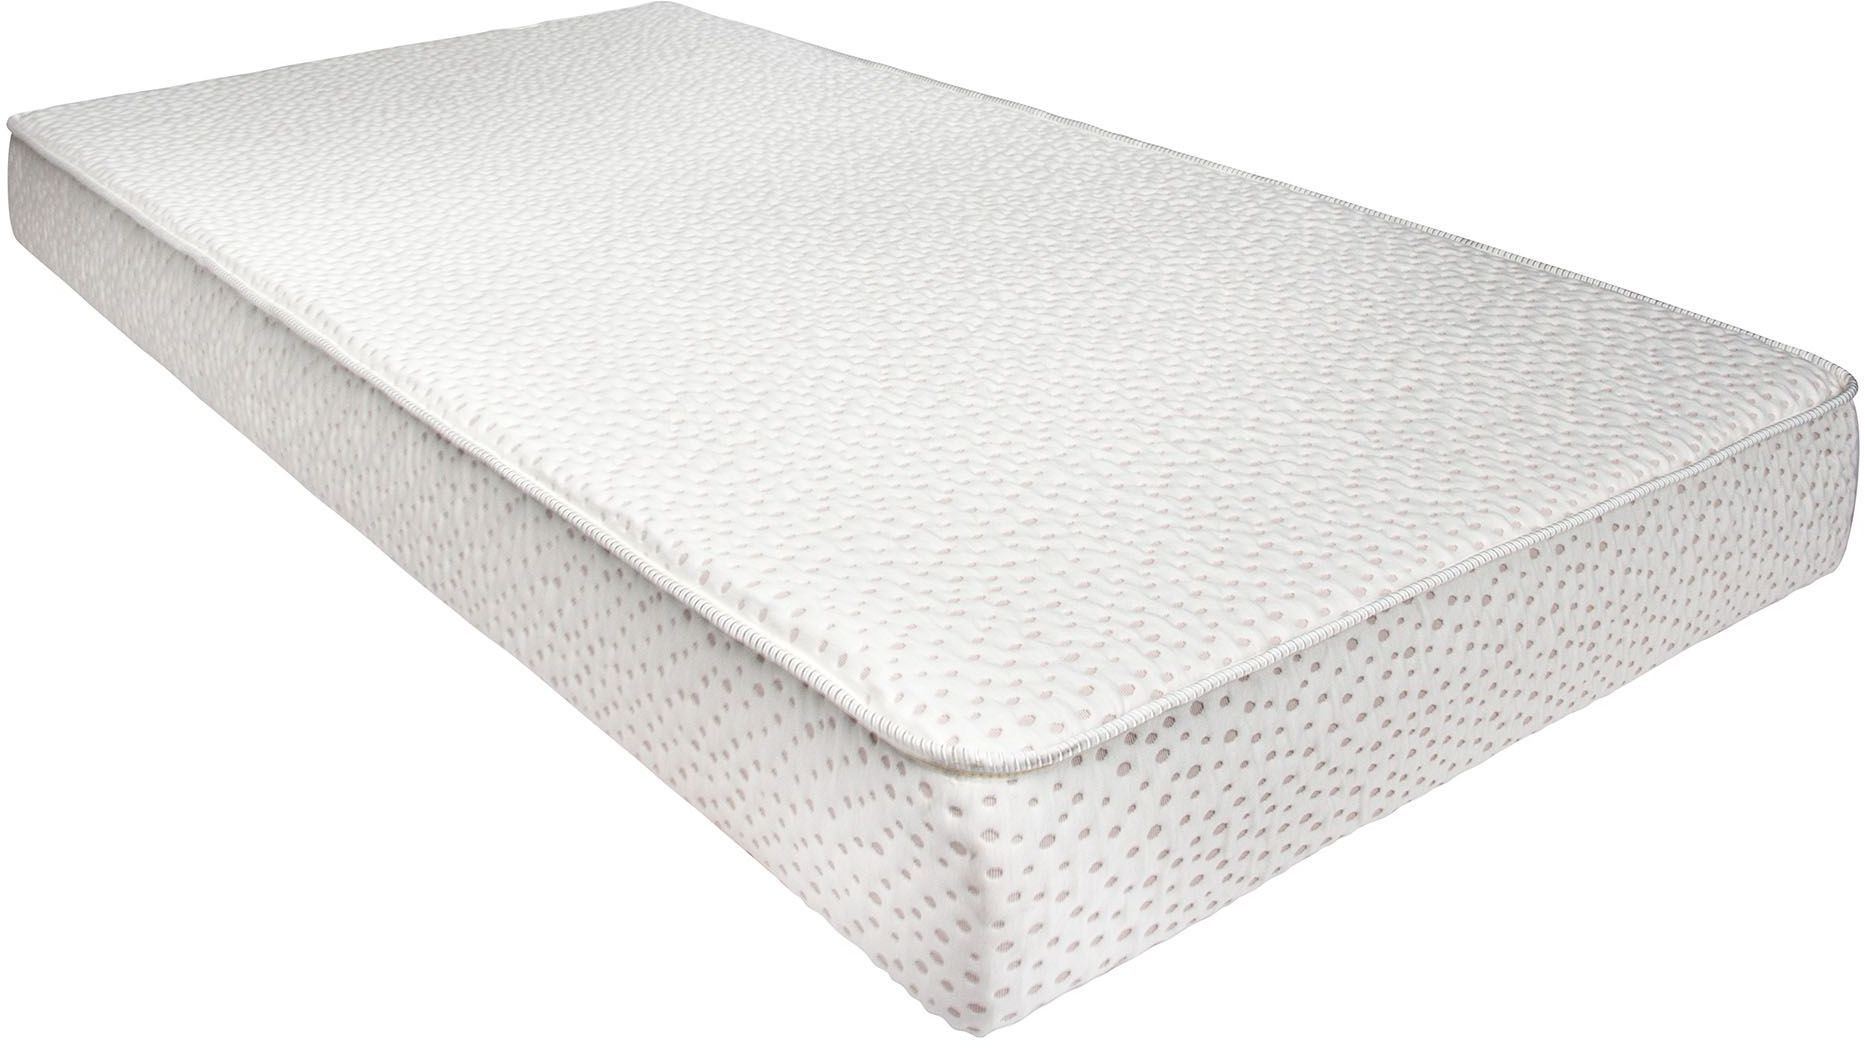 Fennel 7 memory foam twin mattress from furniture of america coleman furniture Double mattress memory foam